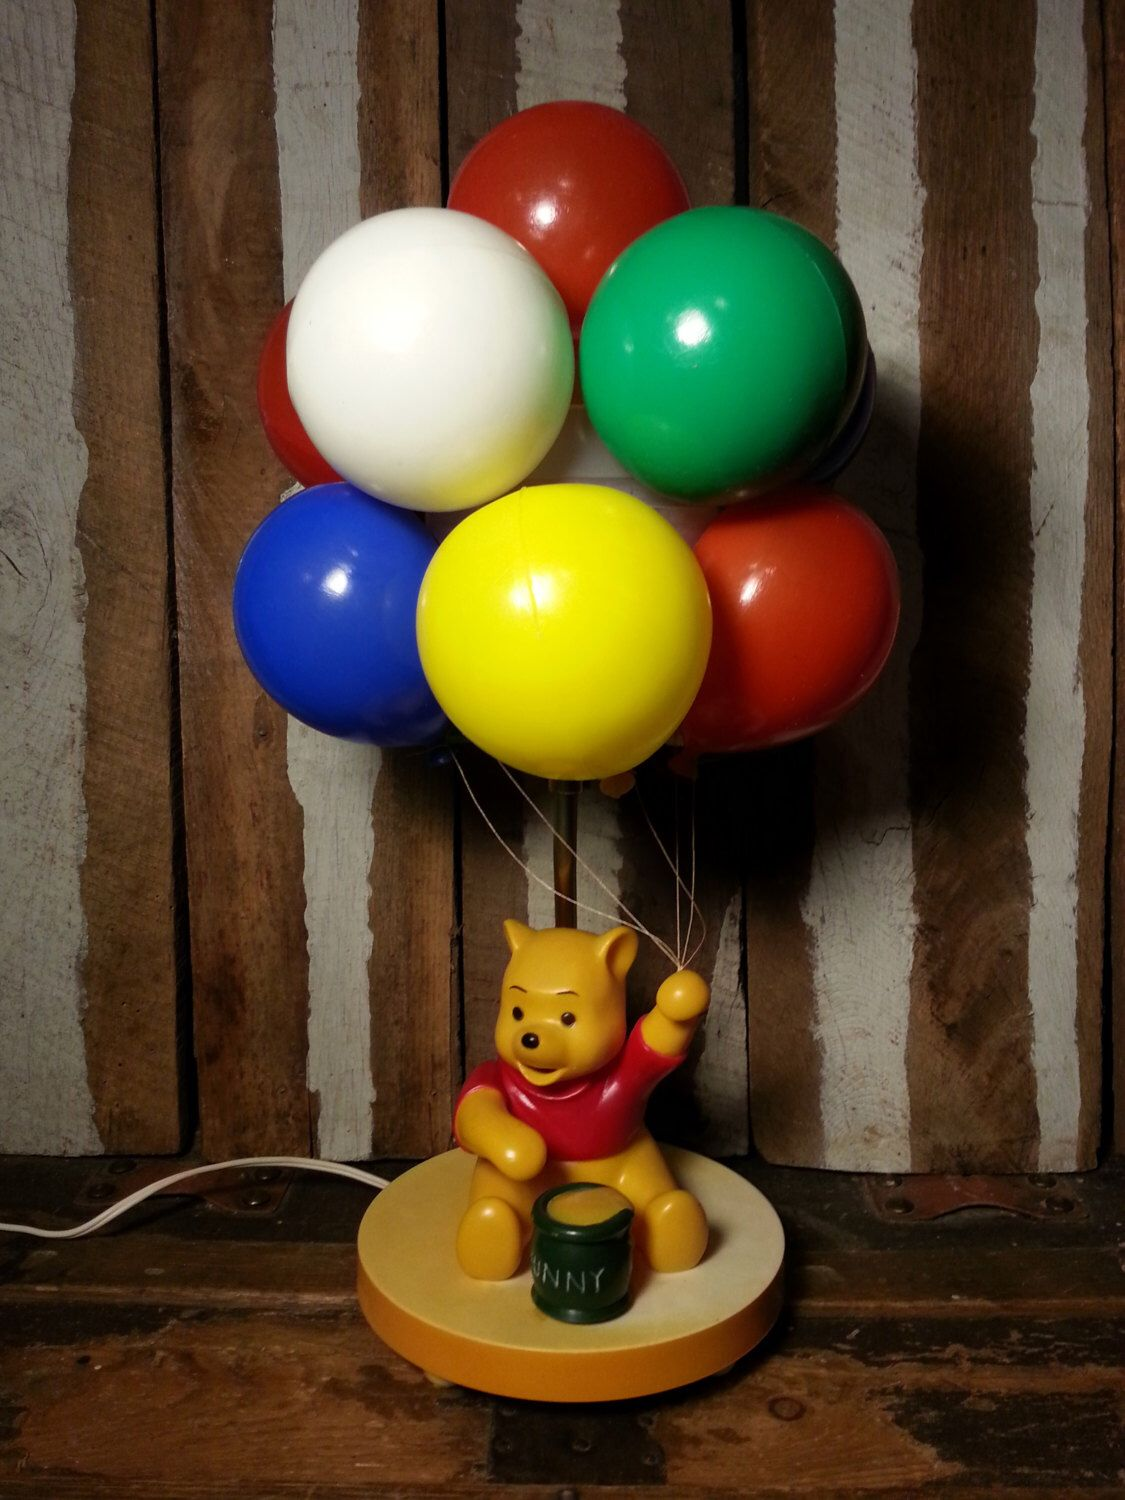 Vintage Sears Winnie The Pooh Balloon Baby Nursery Lamp Kids Room ...